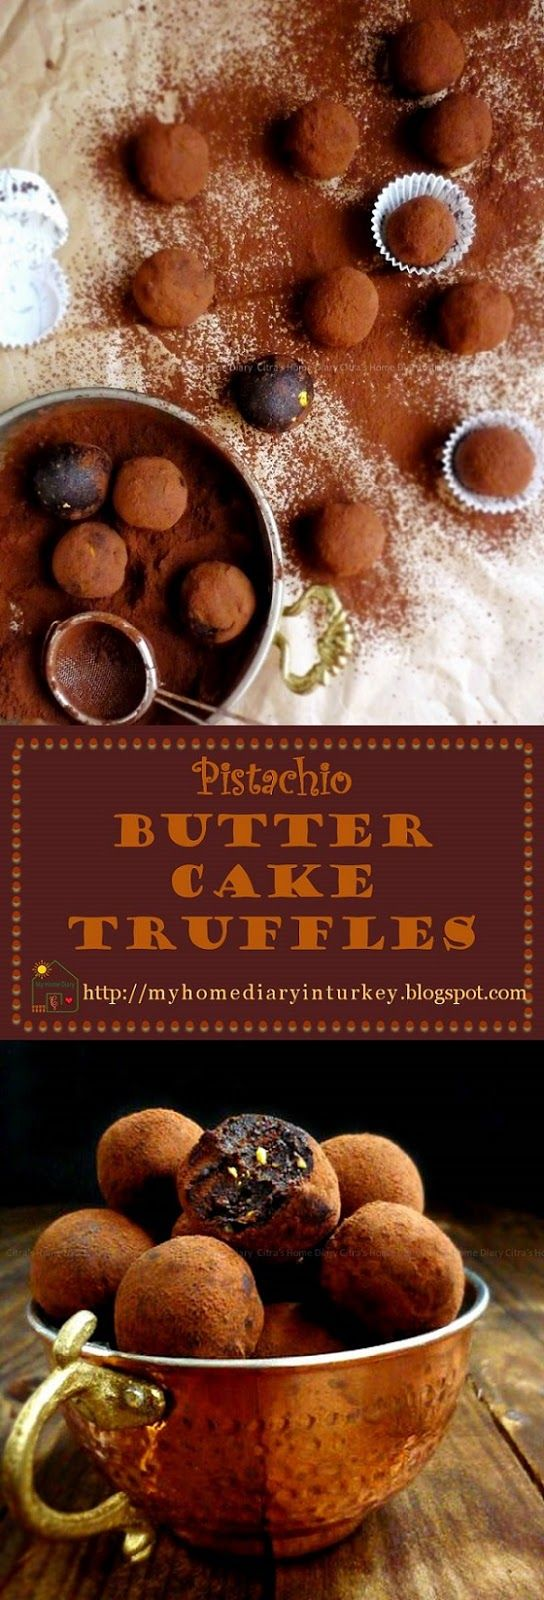 Pistachio Butter Cake Truffles. Fast, easy and no long list of ingredients. Another thing is I made this from my left over butter cake I previously baked, just add pistachio for level up your taste. #dessert #truffles #buttercake #chocolaterecipe #resepcokelat #cocoa #pistachio